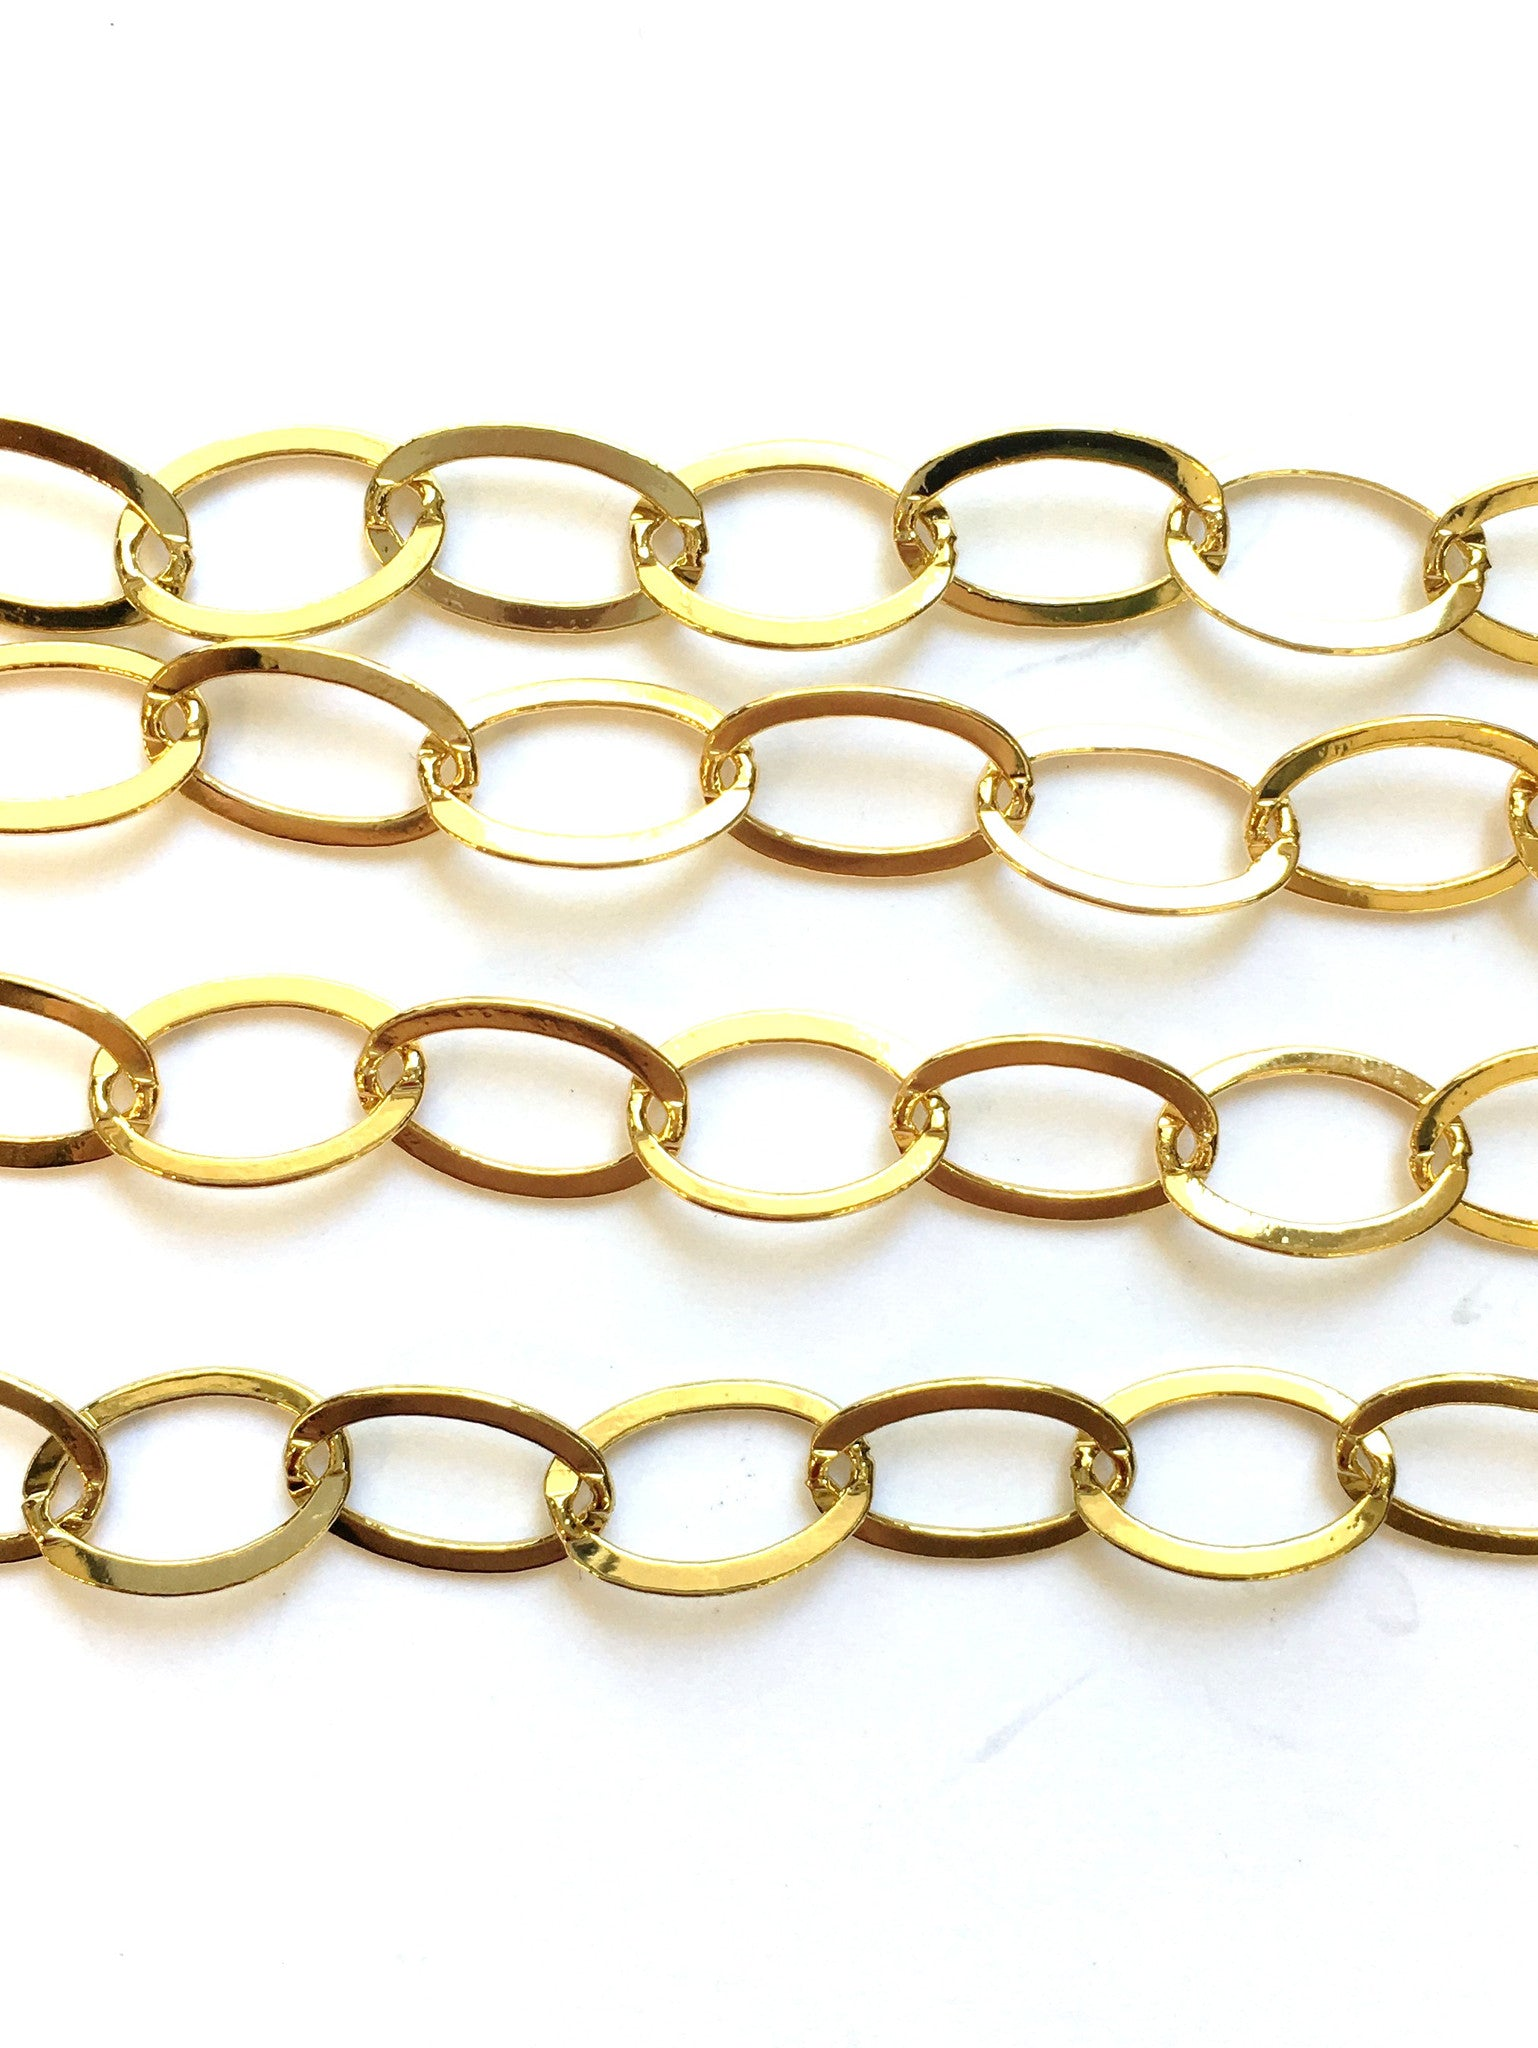 Findings Chain - 16 K Gold Plate - Flash Flat Oval Link - 8.5x13mm (1 Ft)